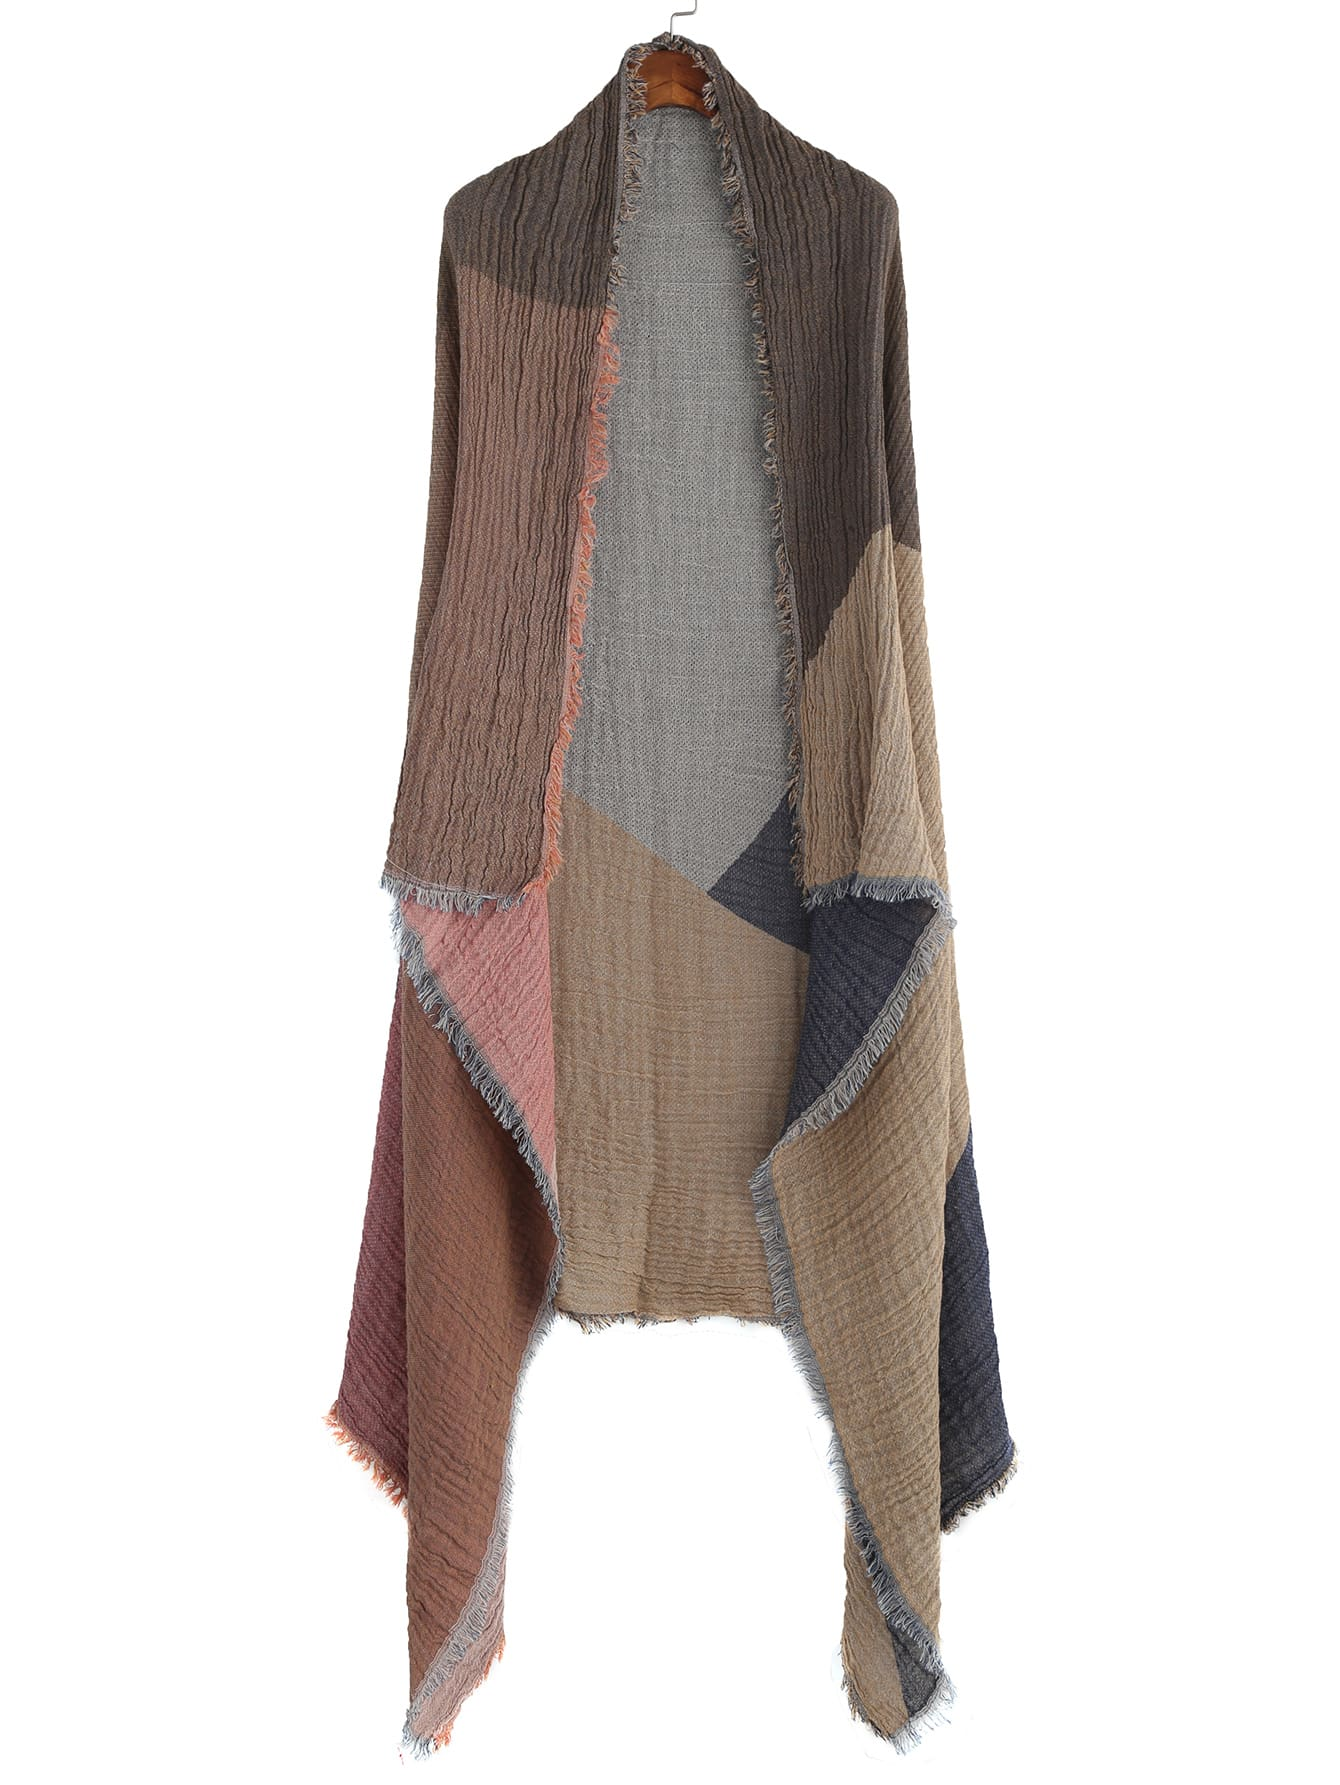 Colorblock Textured Raw Edge Shawl Scarf scarf161027002